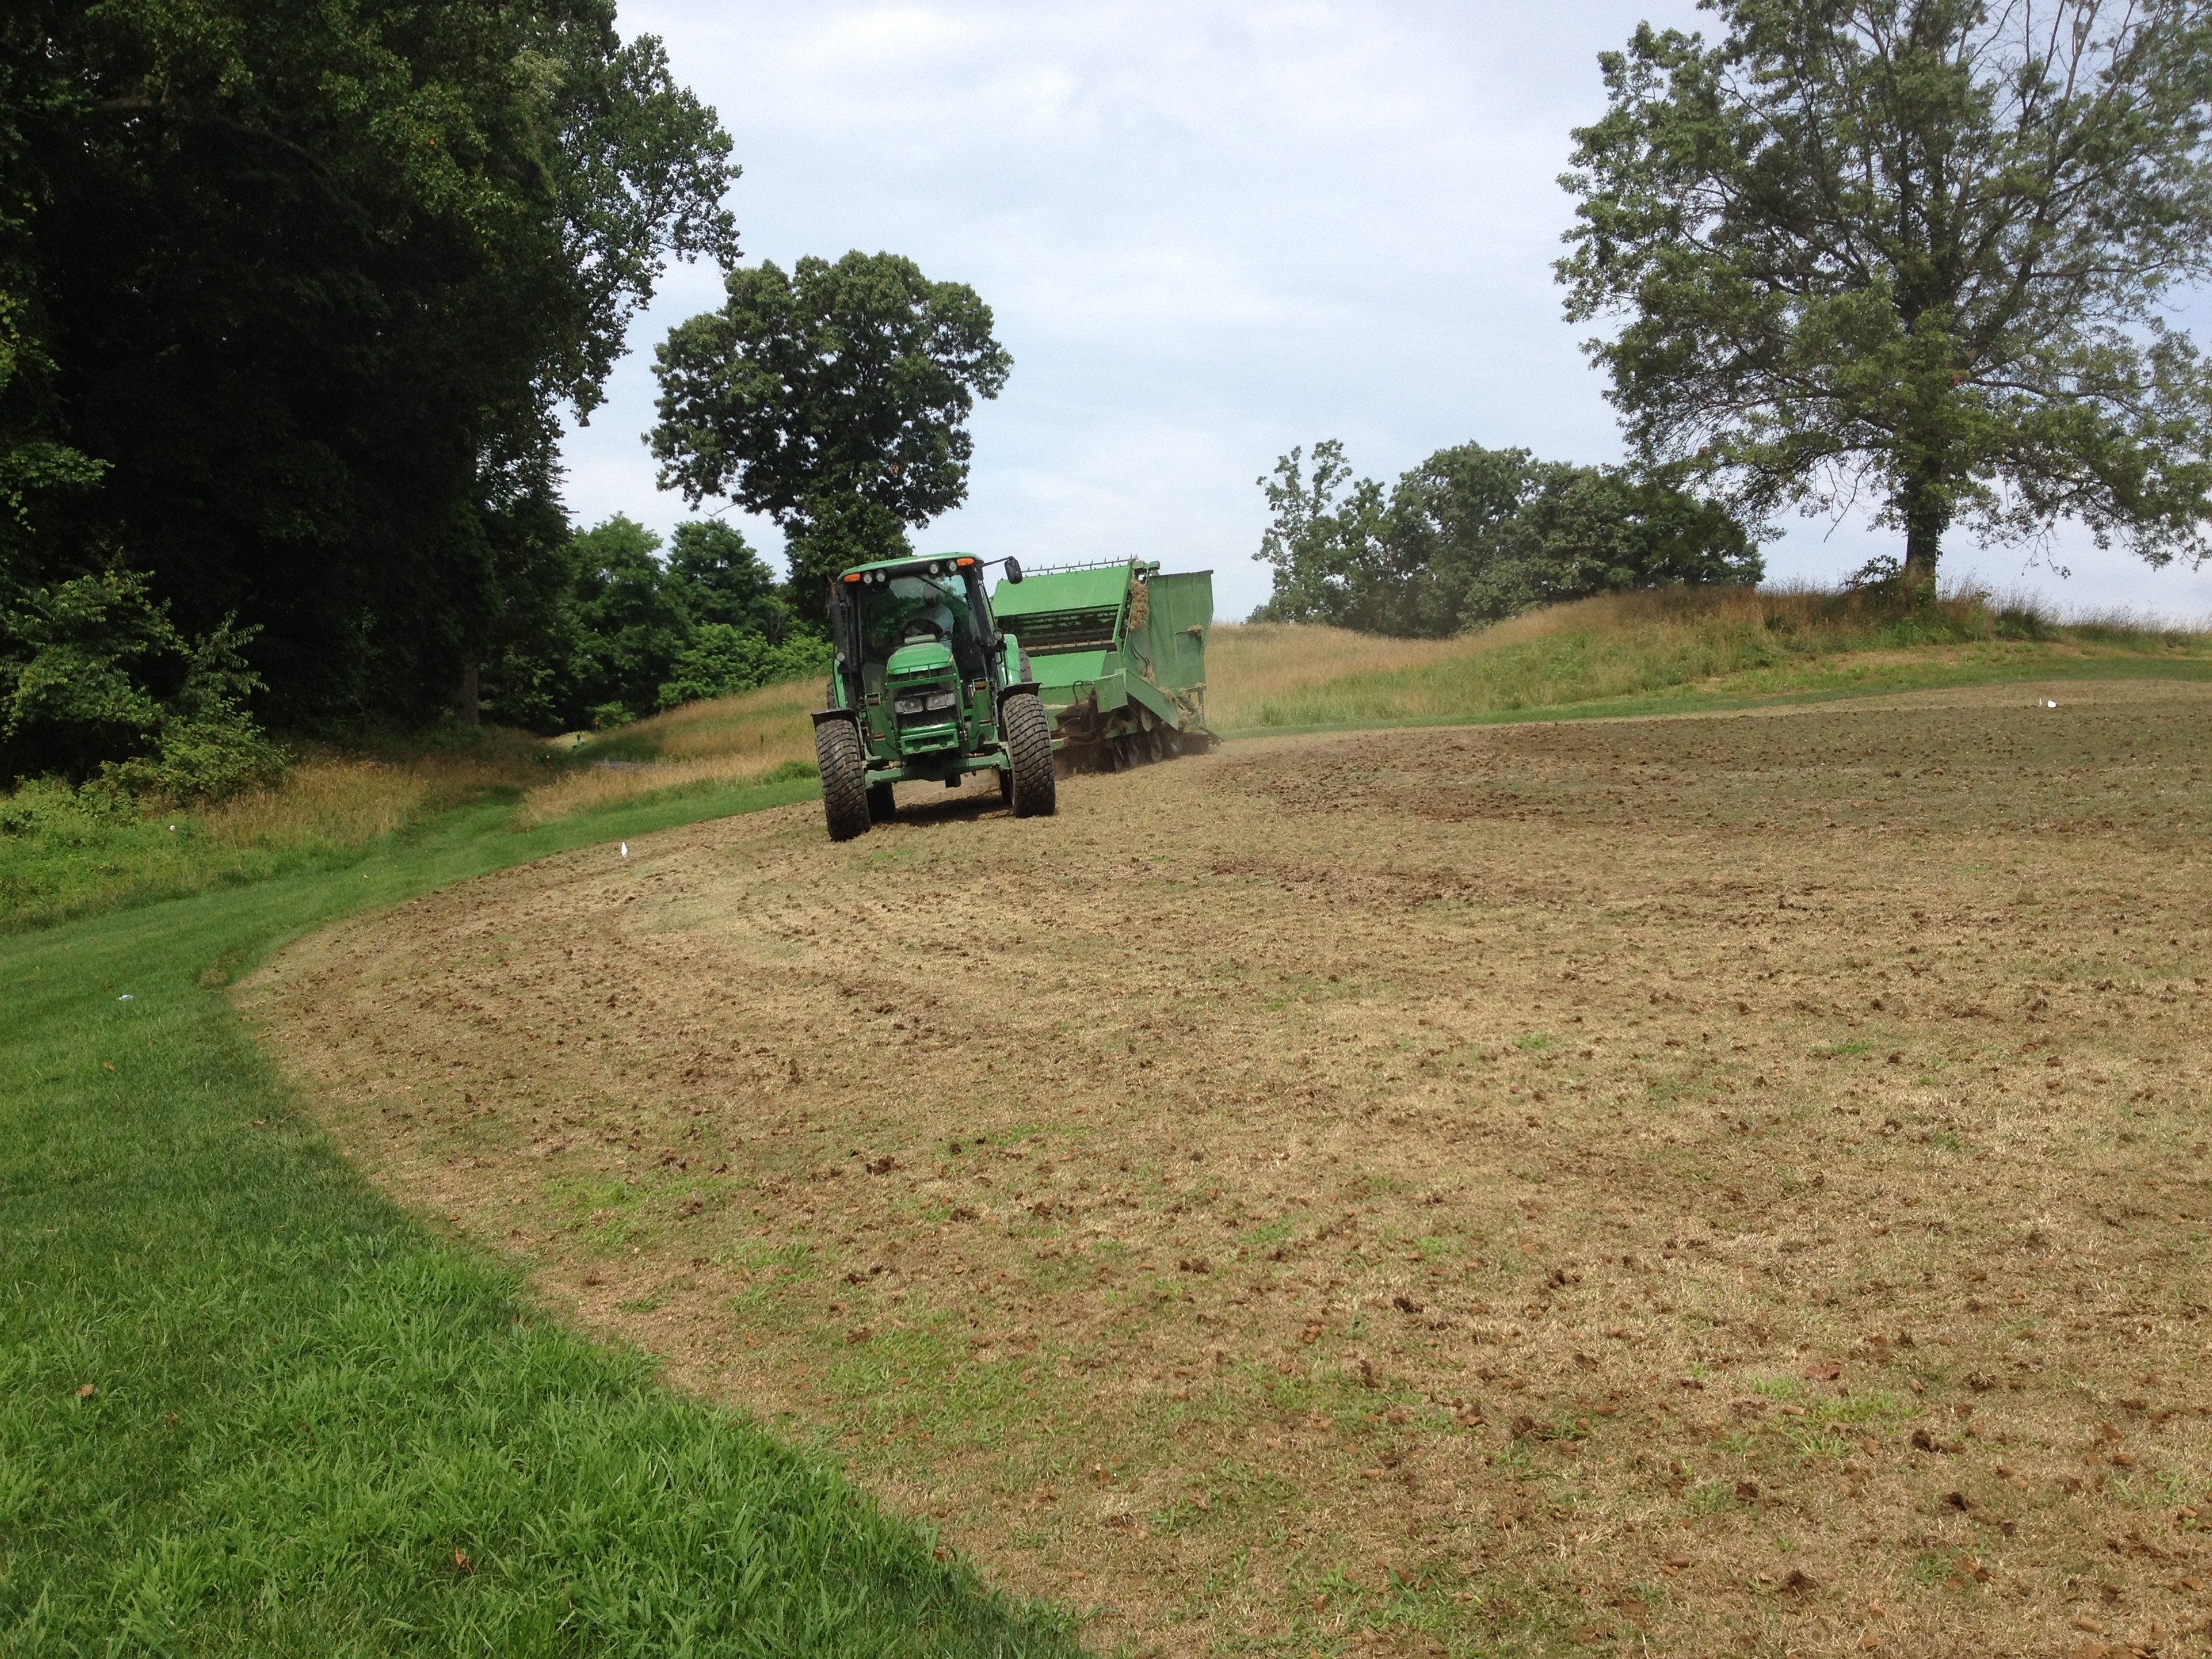 Planting sprigs on a slope